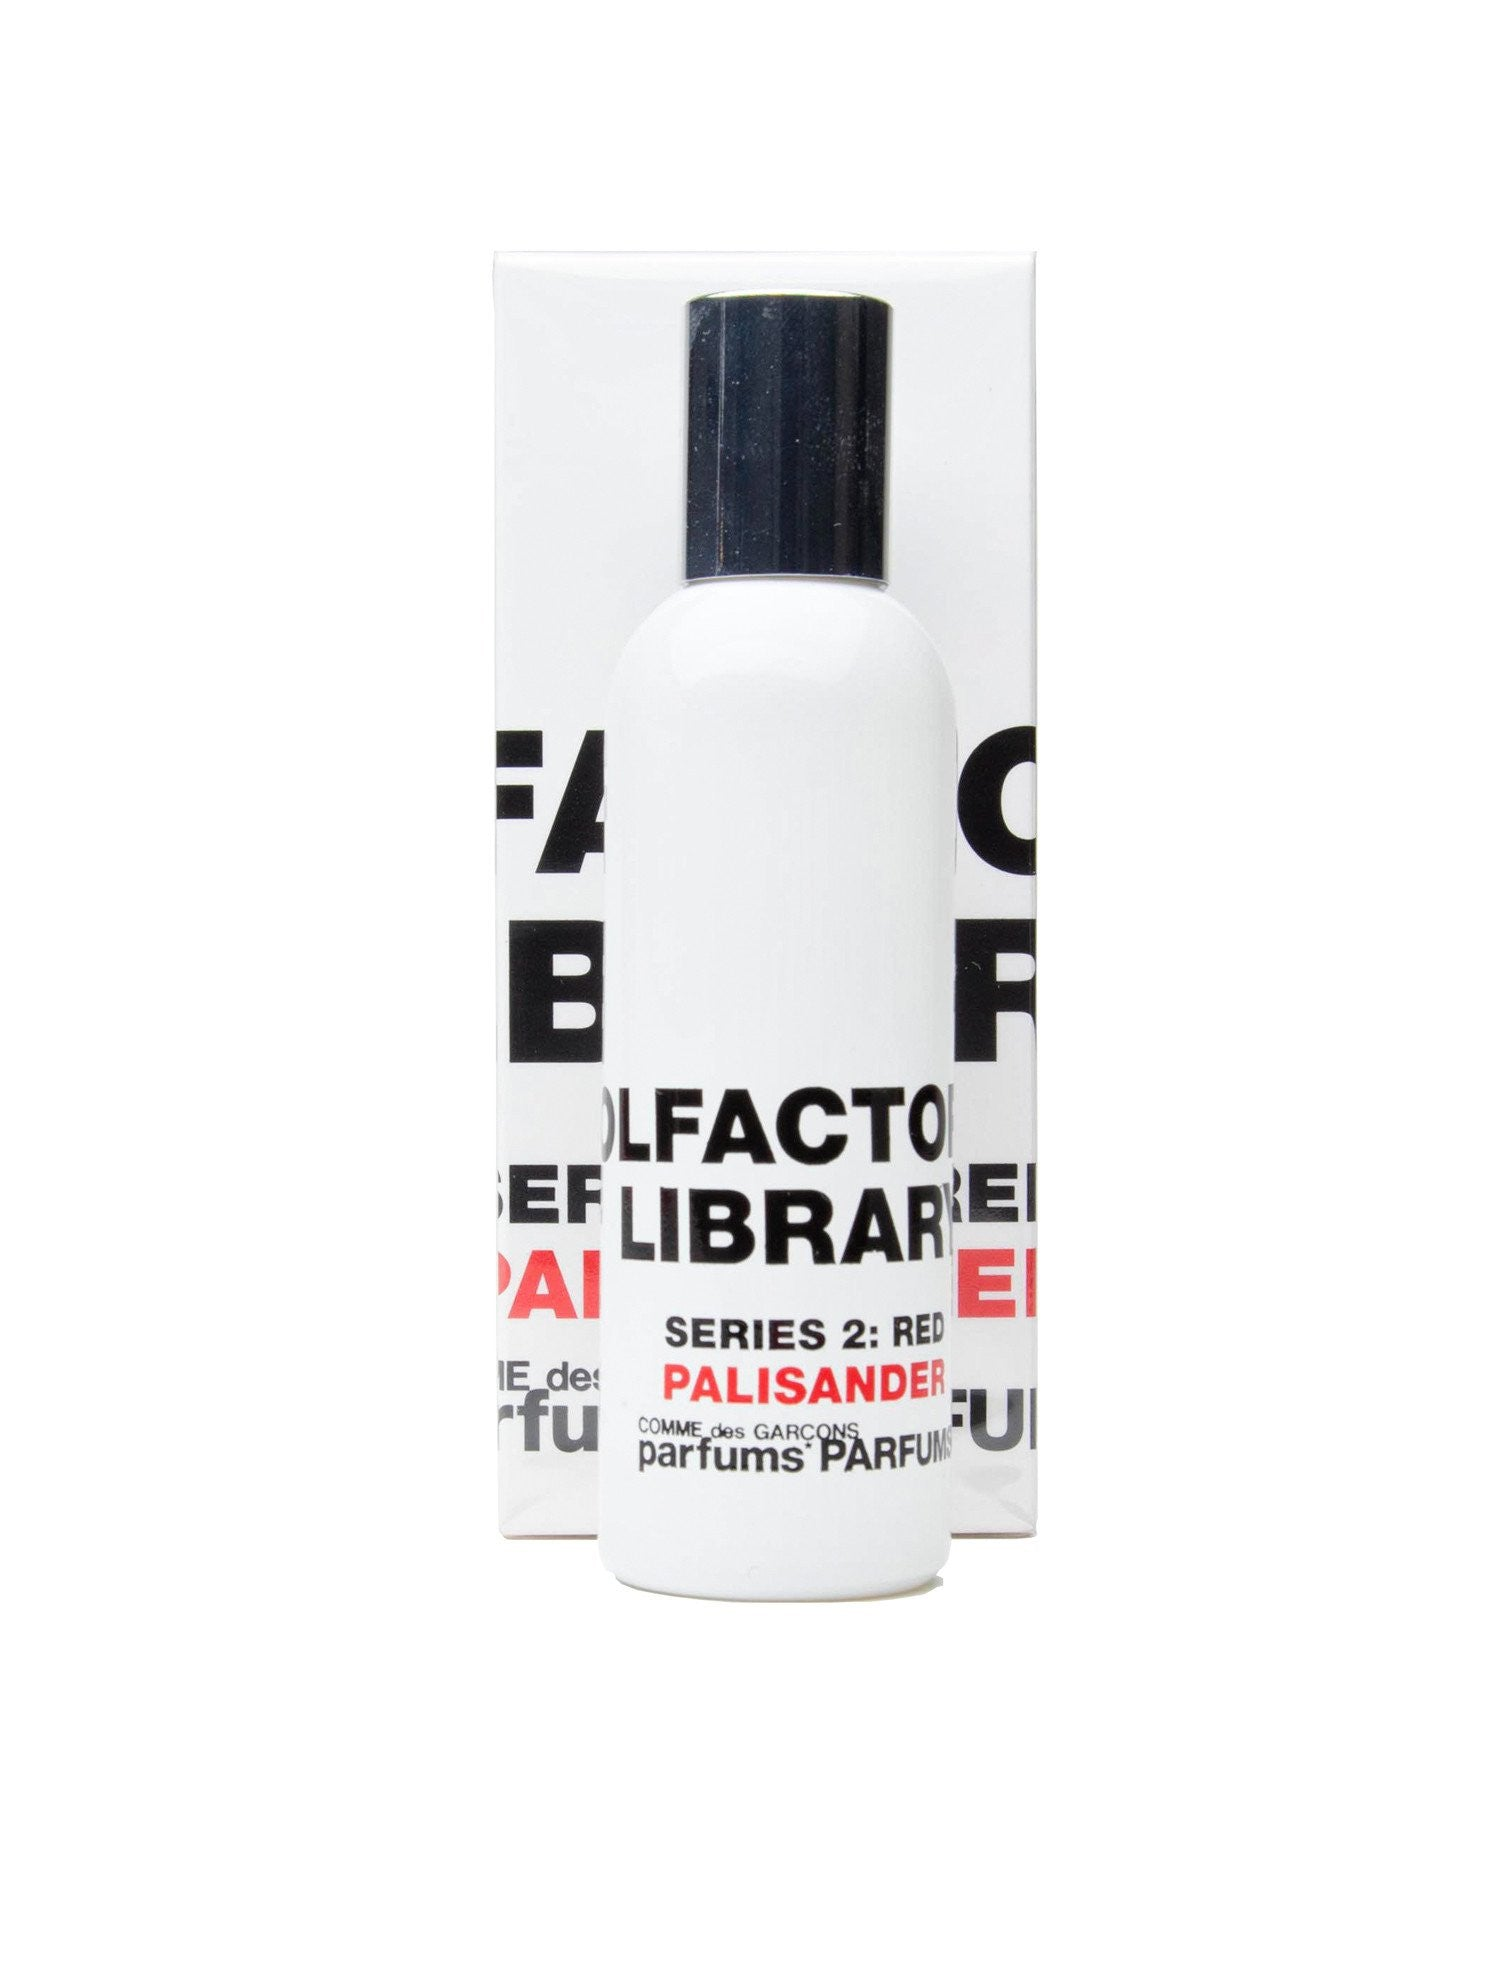 Palisander OLFactory Library Cologne Series 2 (Red) 3